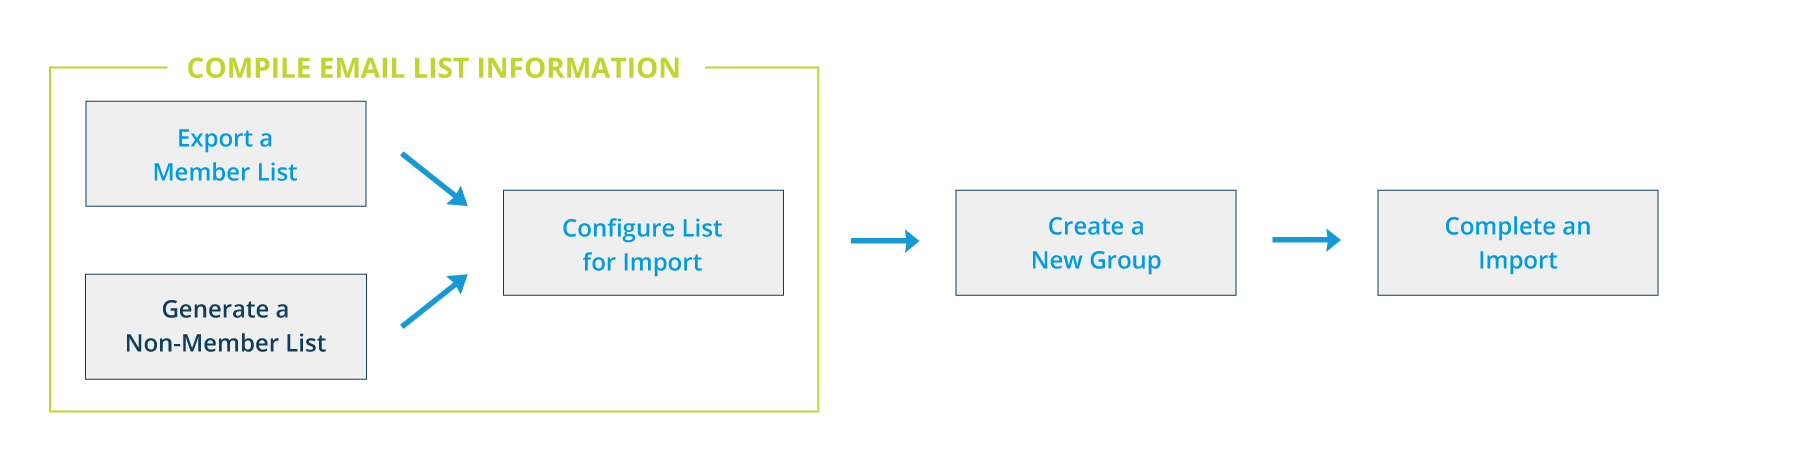 Import an Email List Workflow